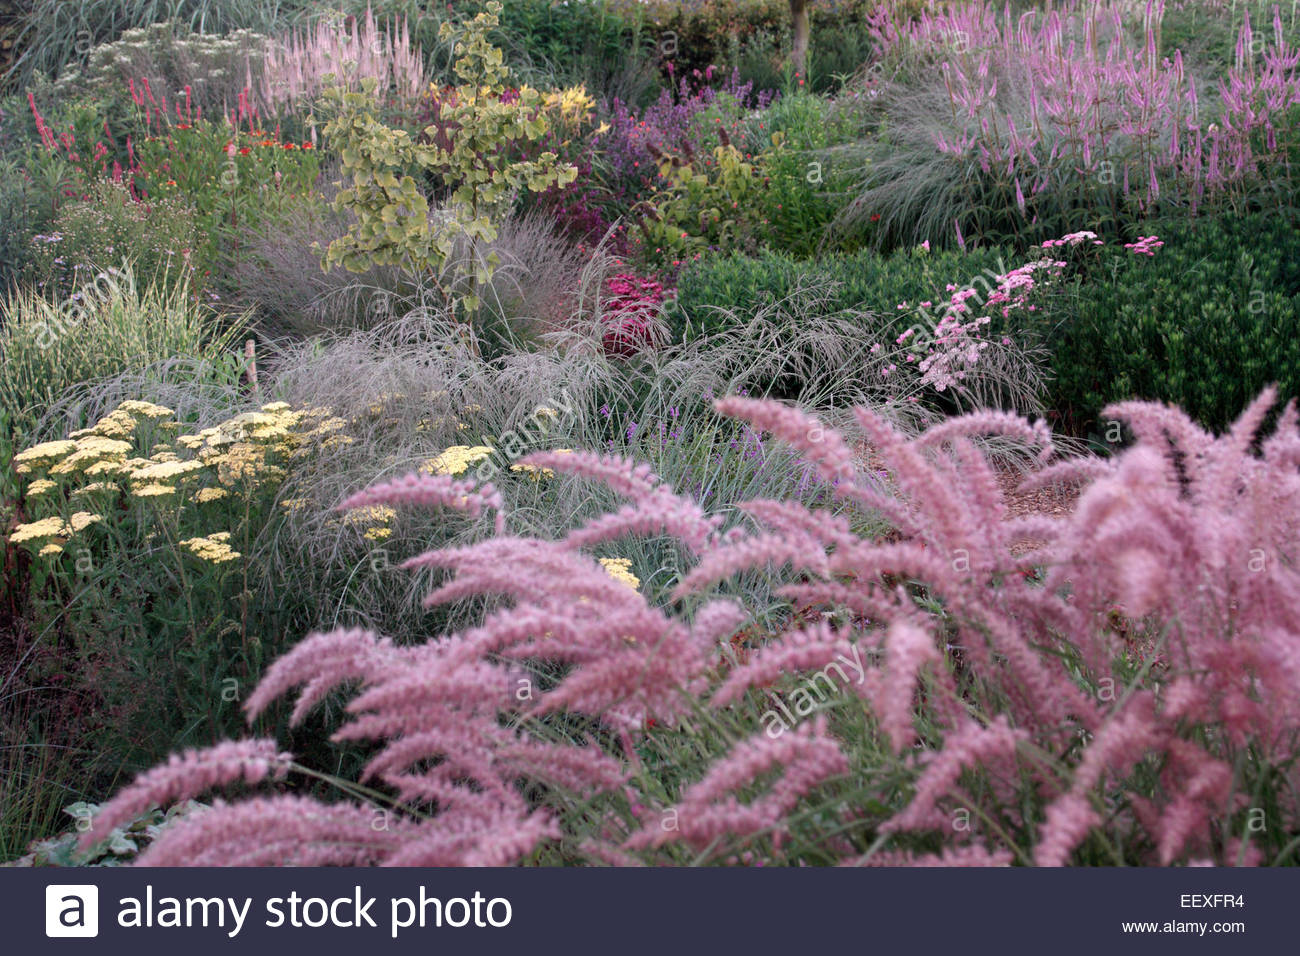 pennisetum orientale 39 karley rose at kwekerij jacobs jacobs garden stock photo royalty free. Black Bedroom Furniture Sets. Home Design Ideas